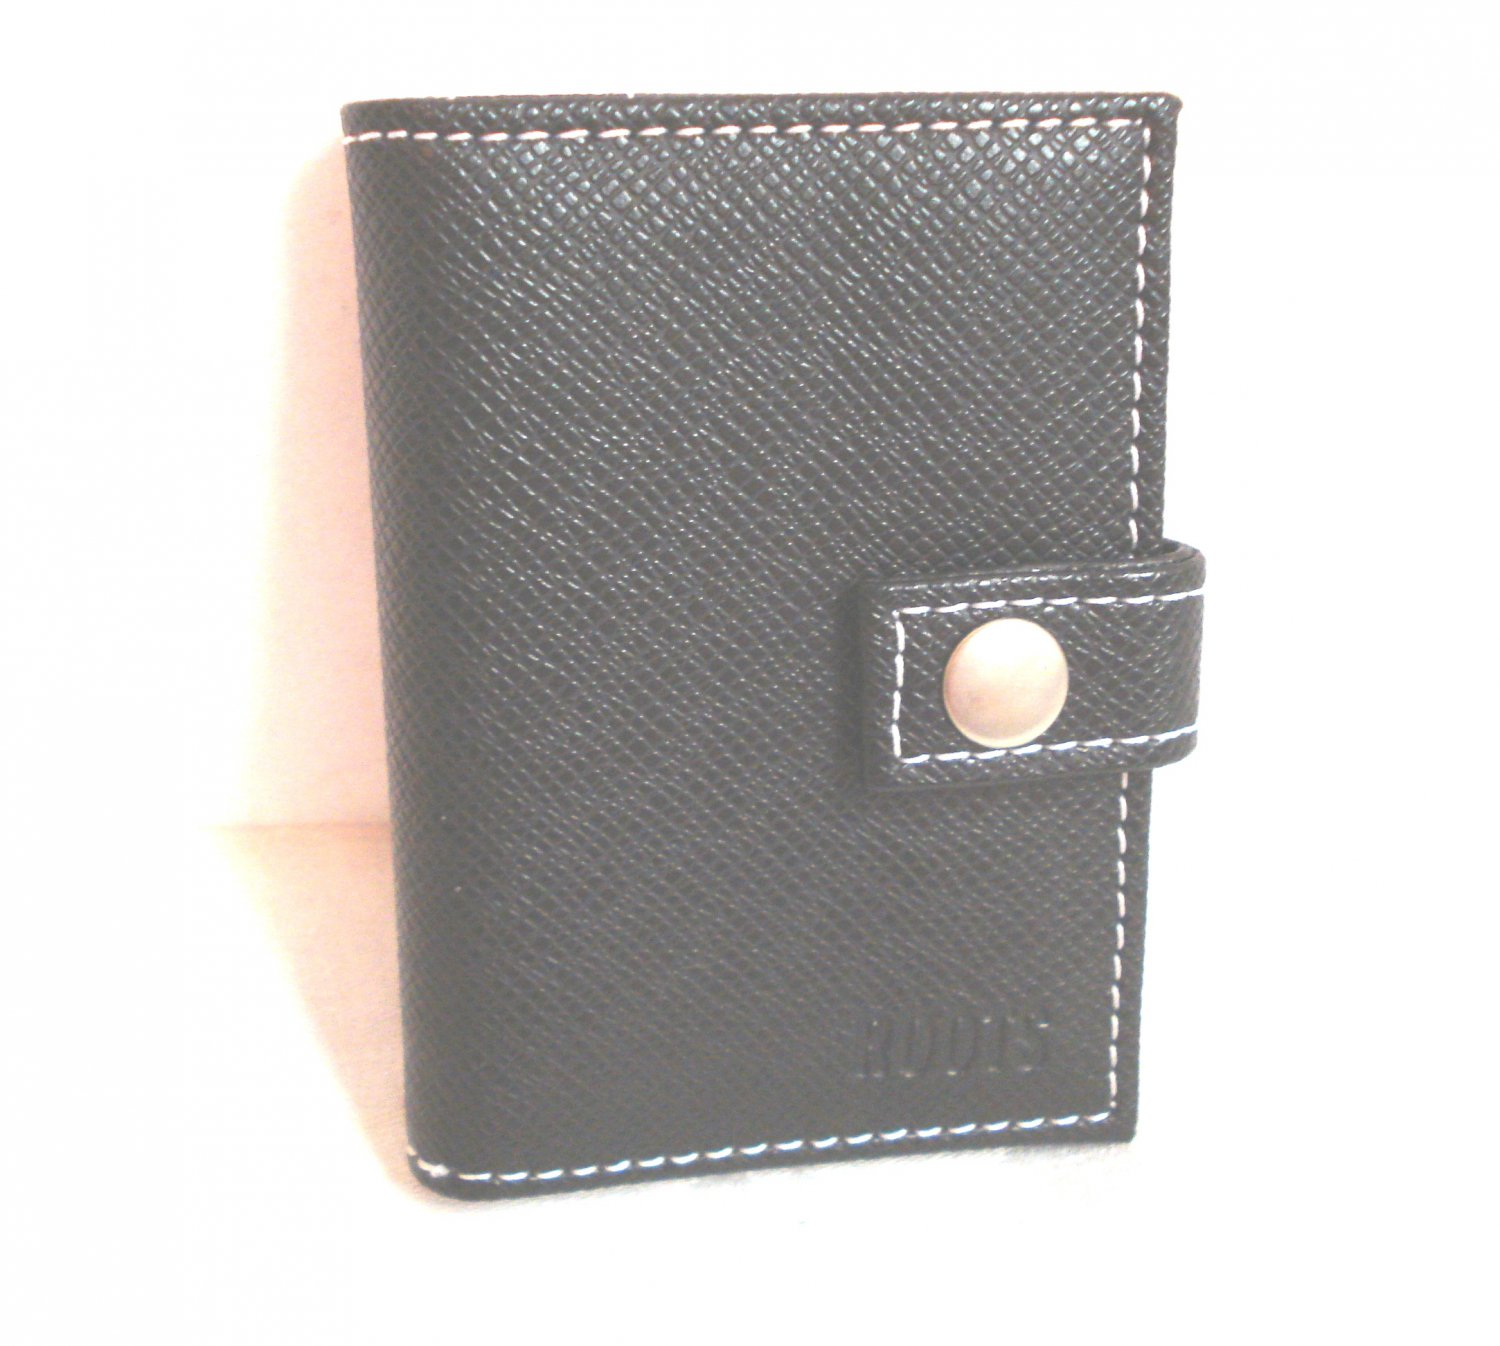 Roots black leather card or ID case unused pre-owned unisex ll3269